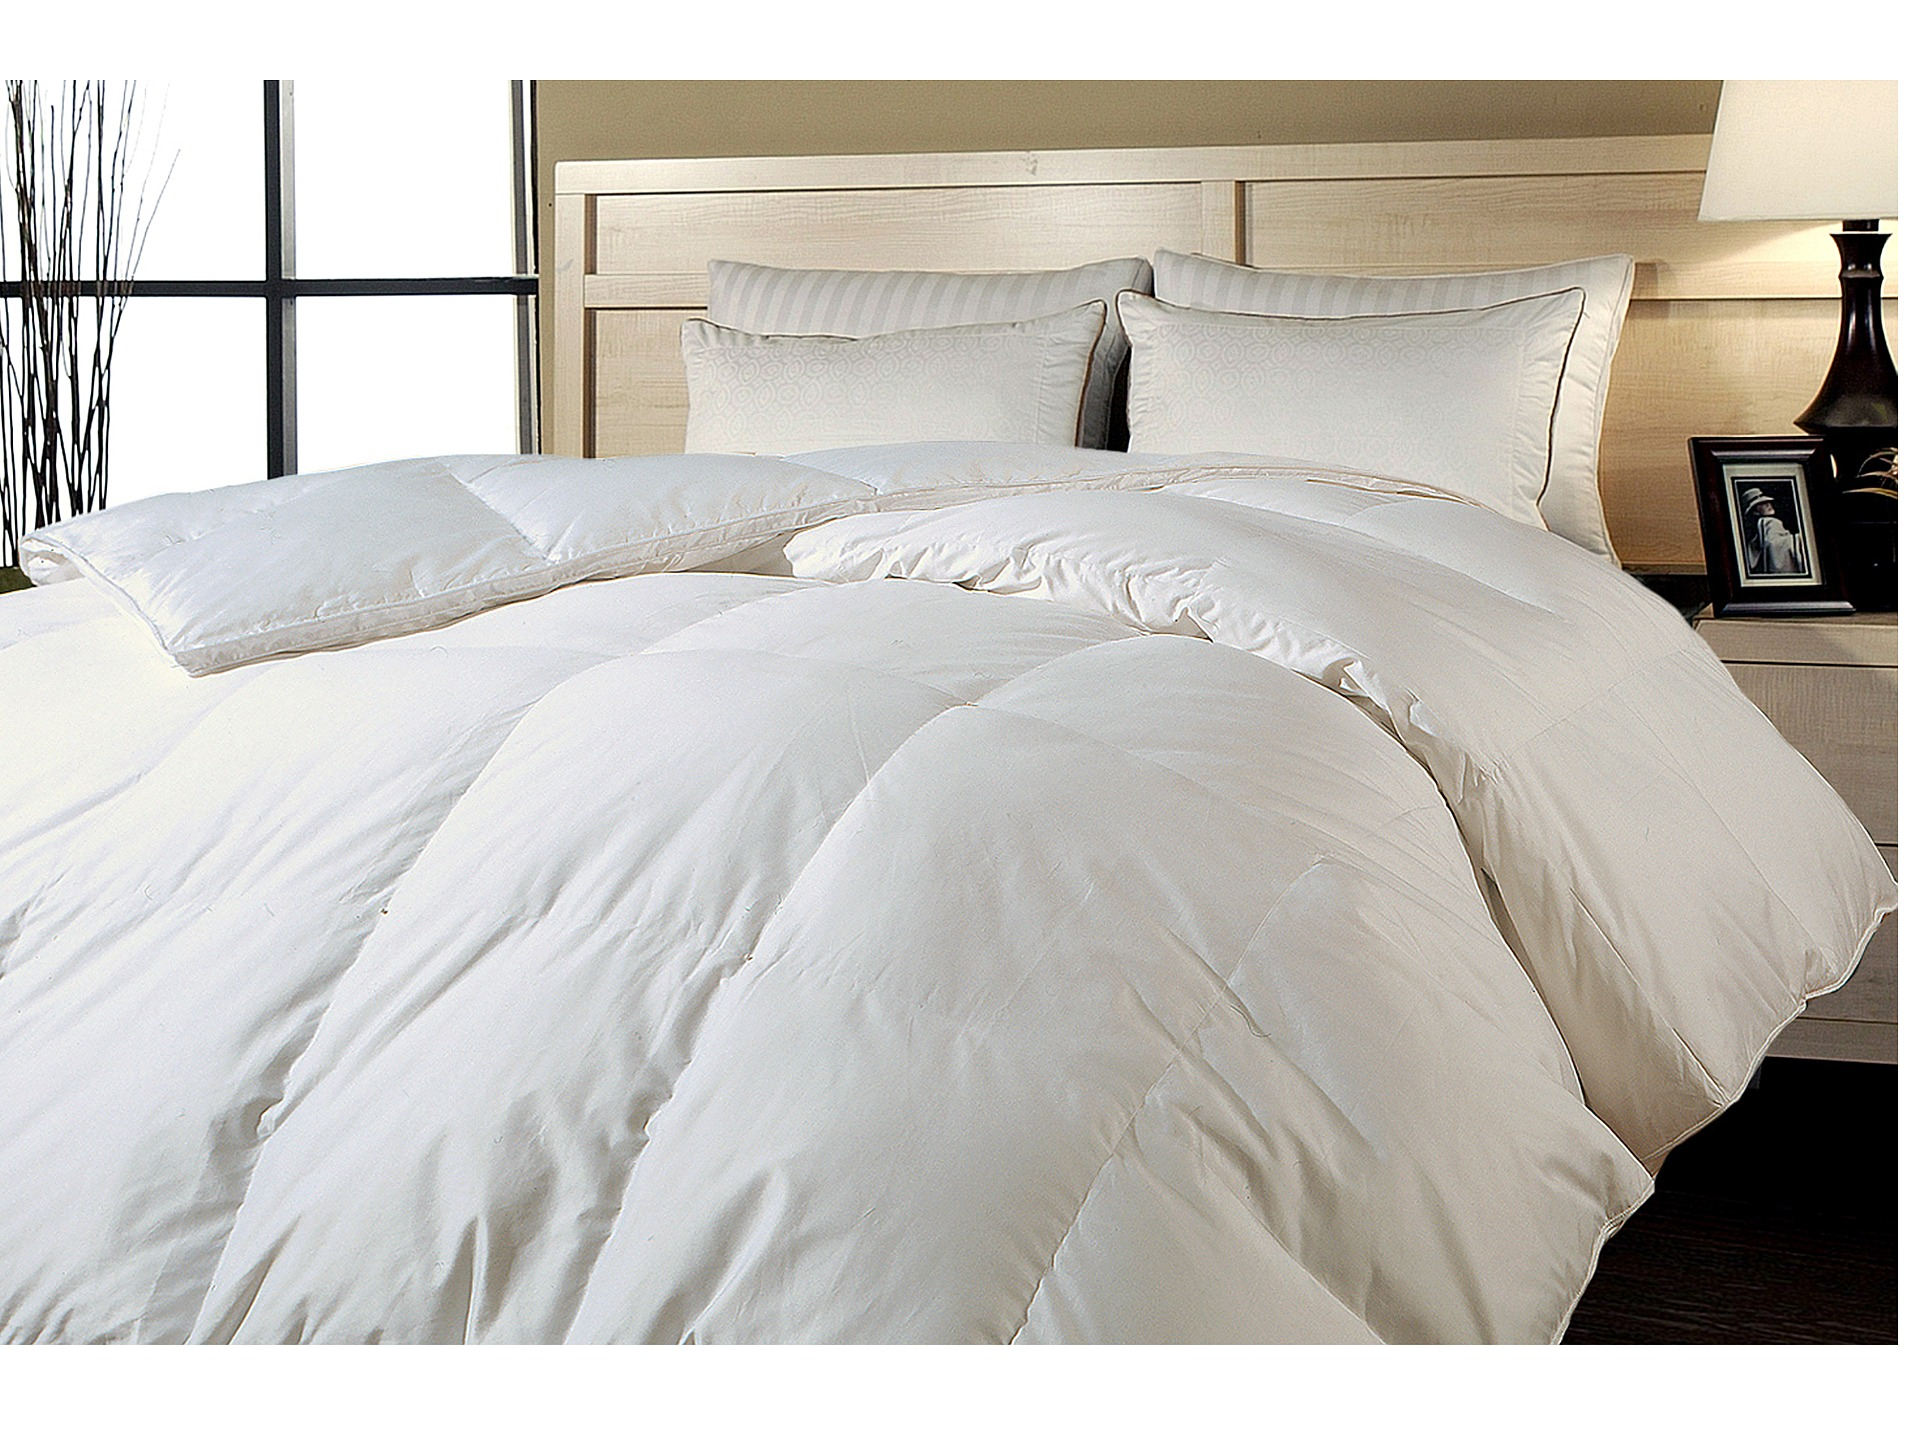 cotton karyna grey bedding free sateen comforter madison product shipping printed set bath park today overstock piece